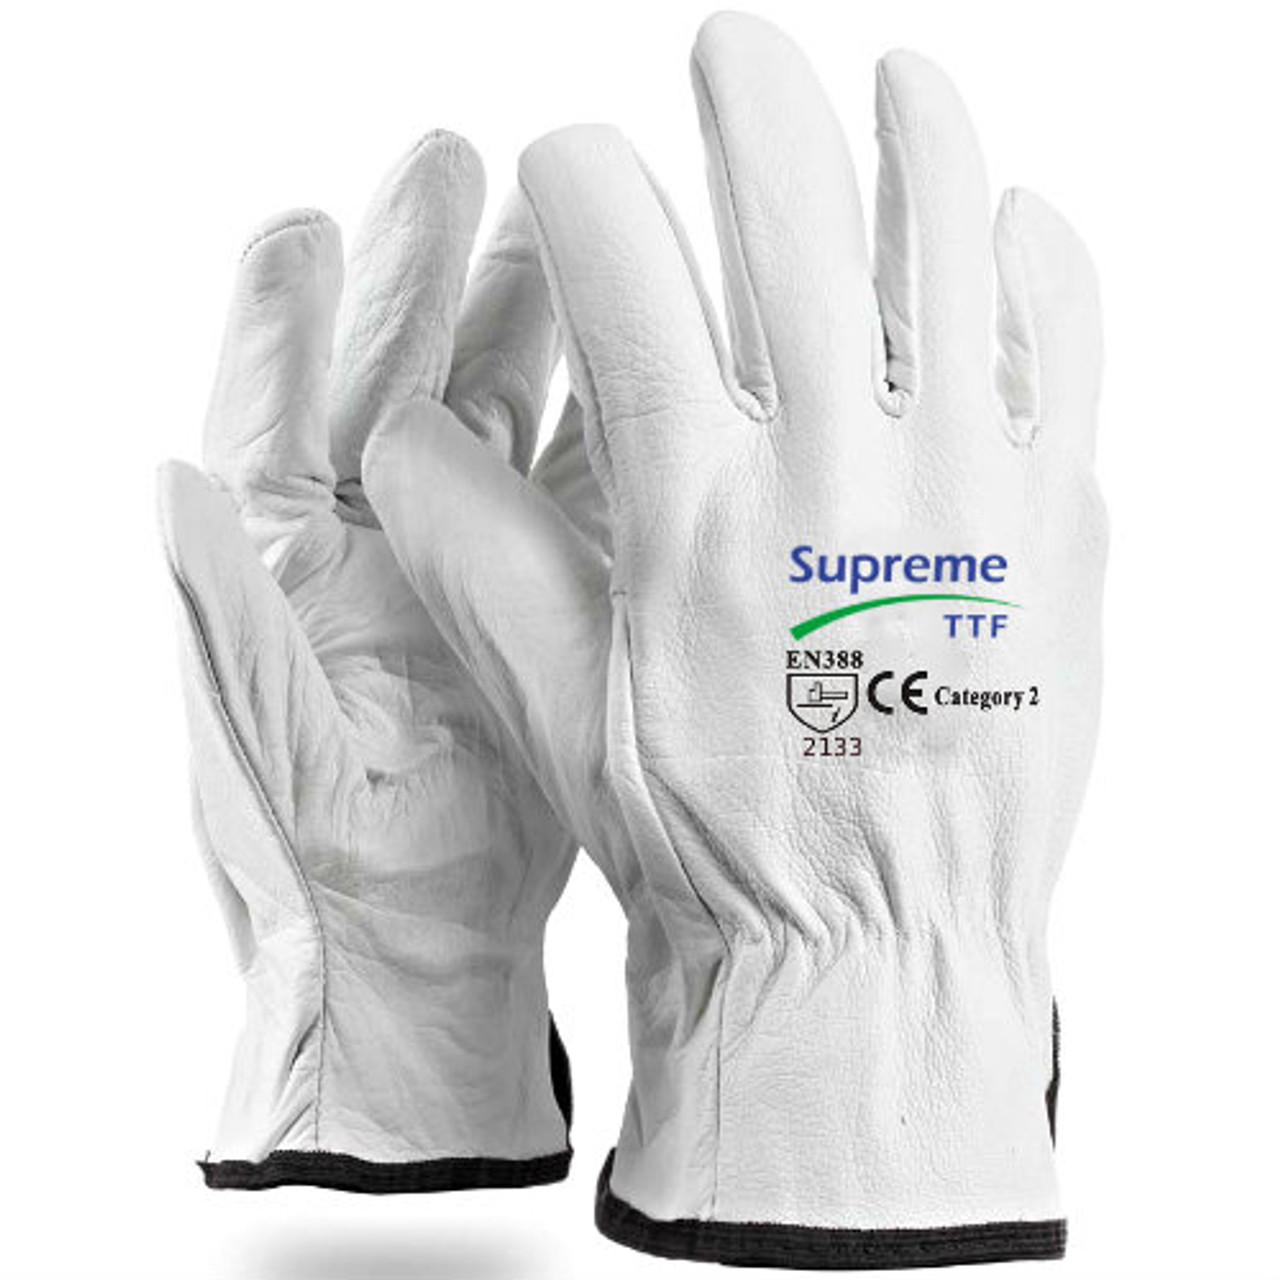 GLG2207P Drivers Gloves Leather With Cotton Lining White